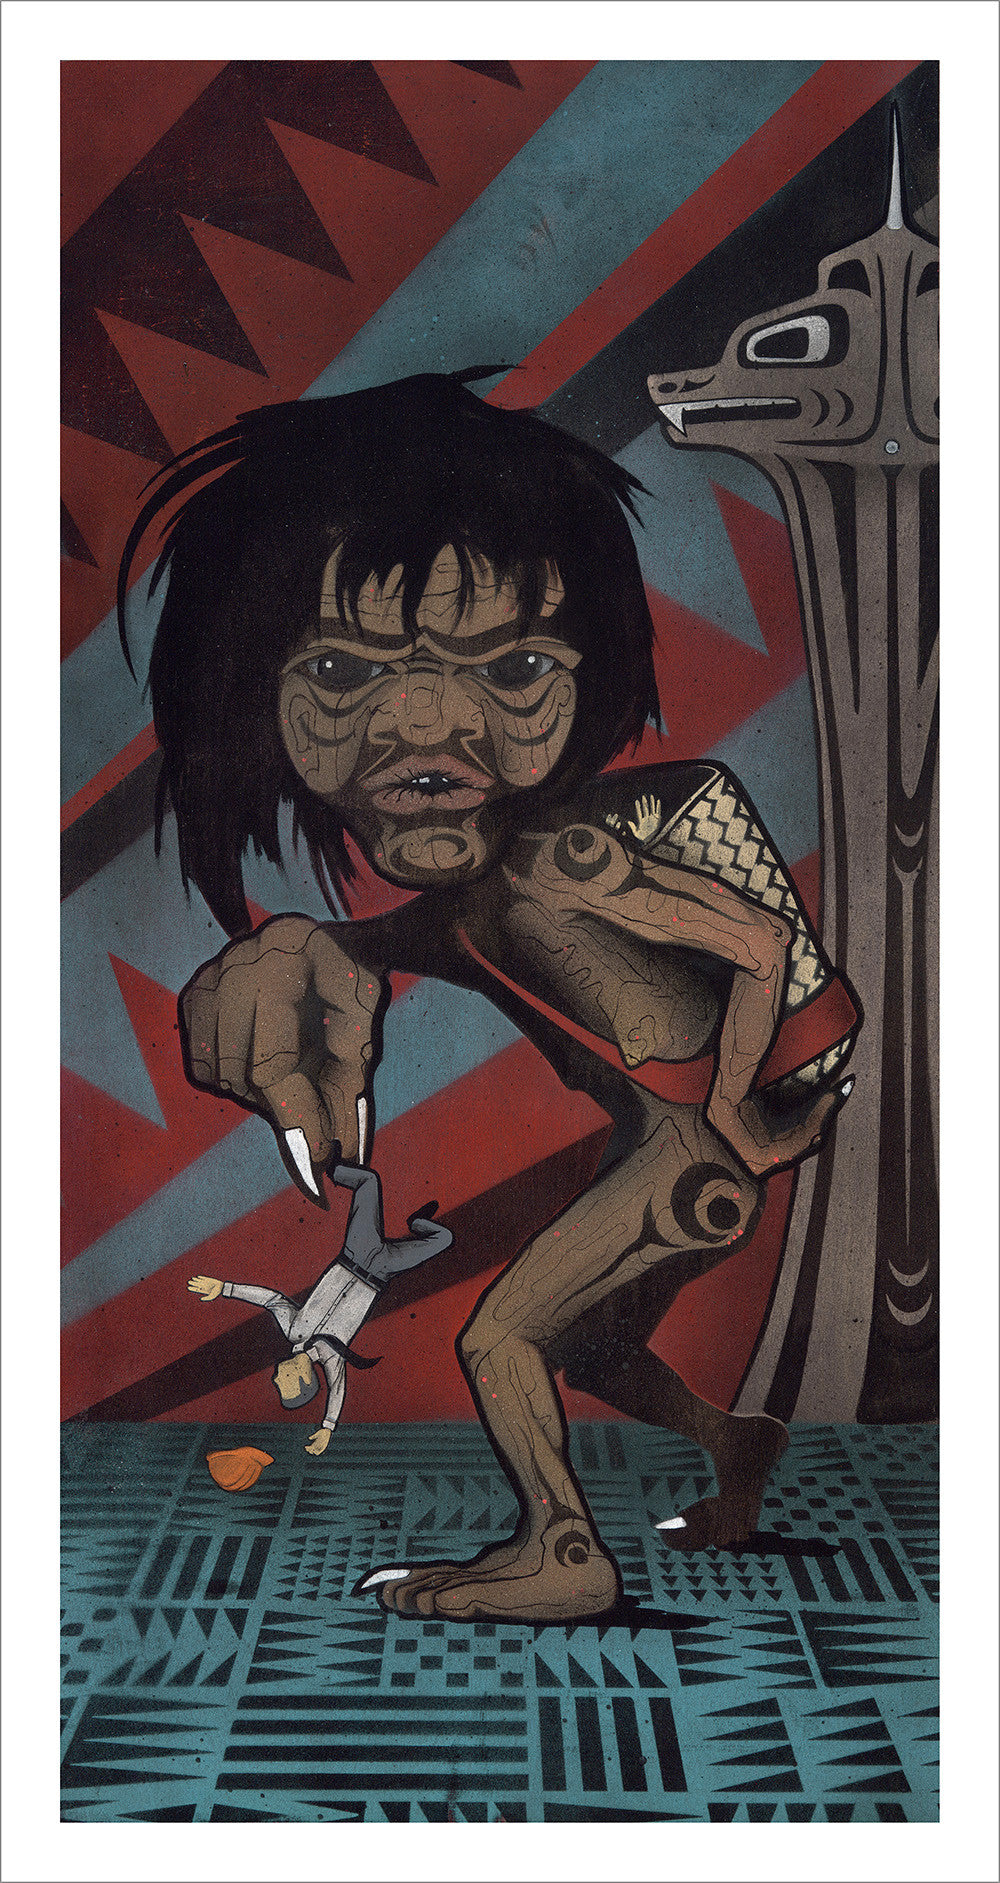 Slapoo limited edition Giclee print by Nooksack Native artist Louie Gong